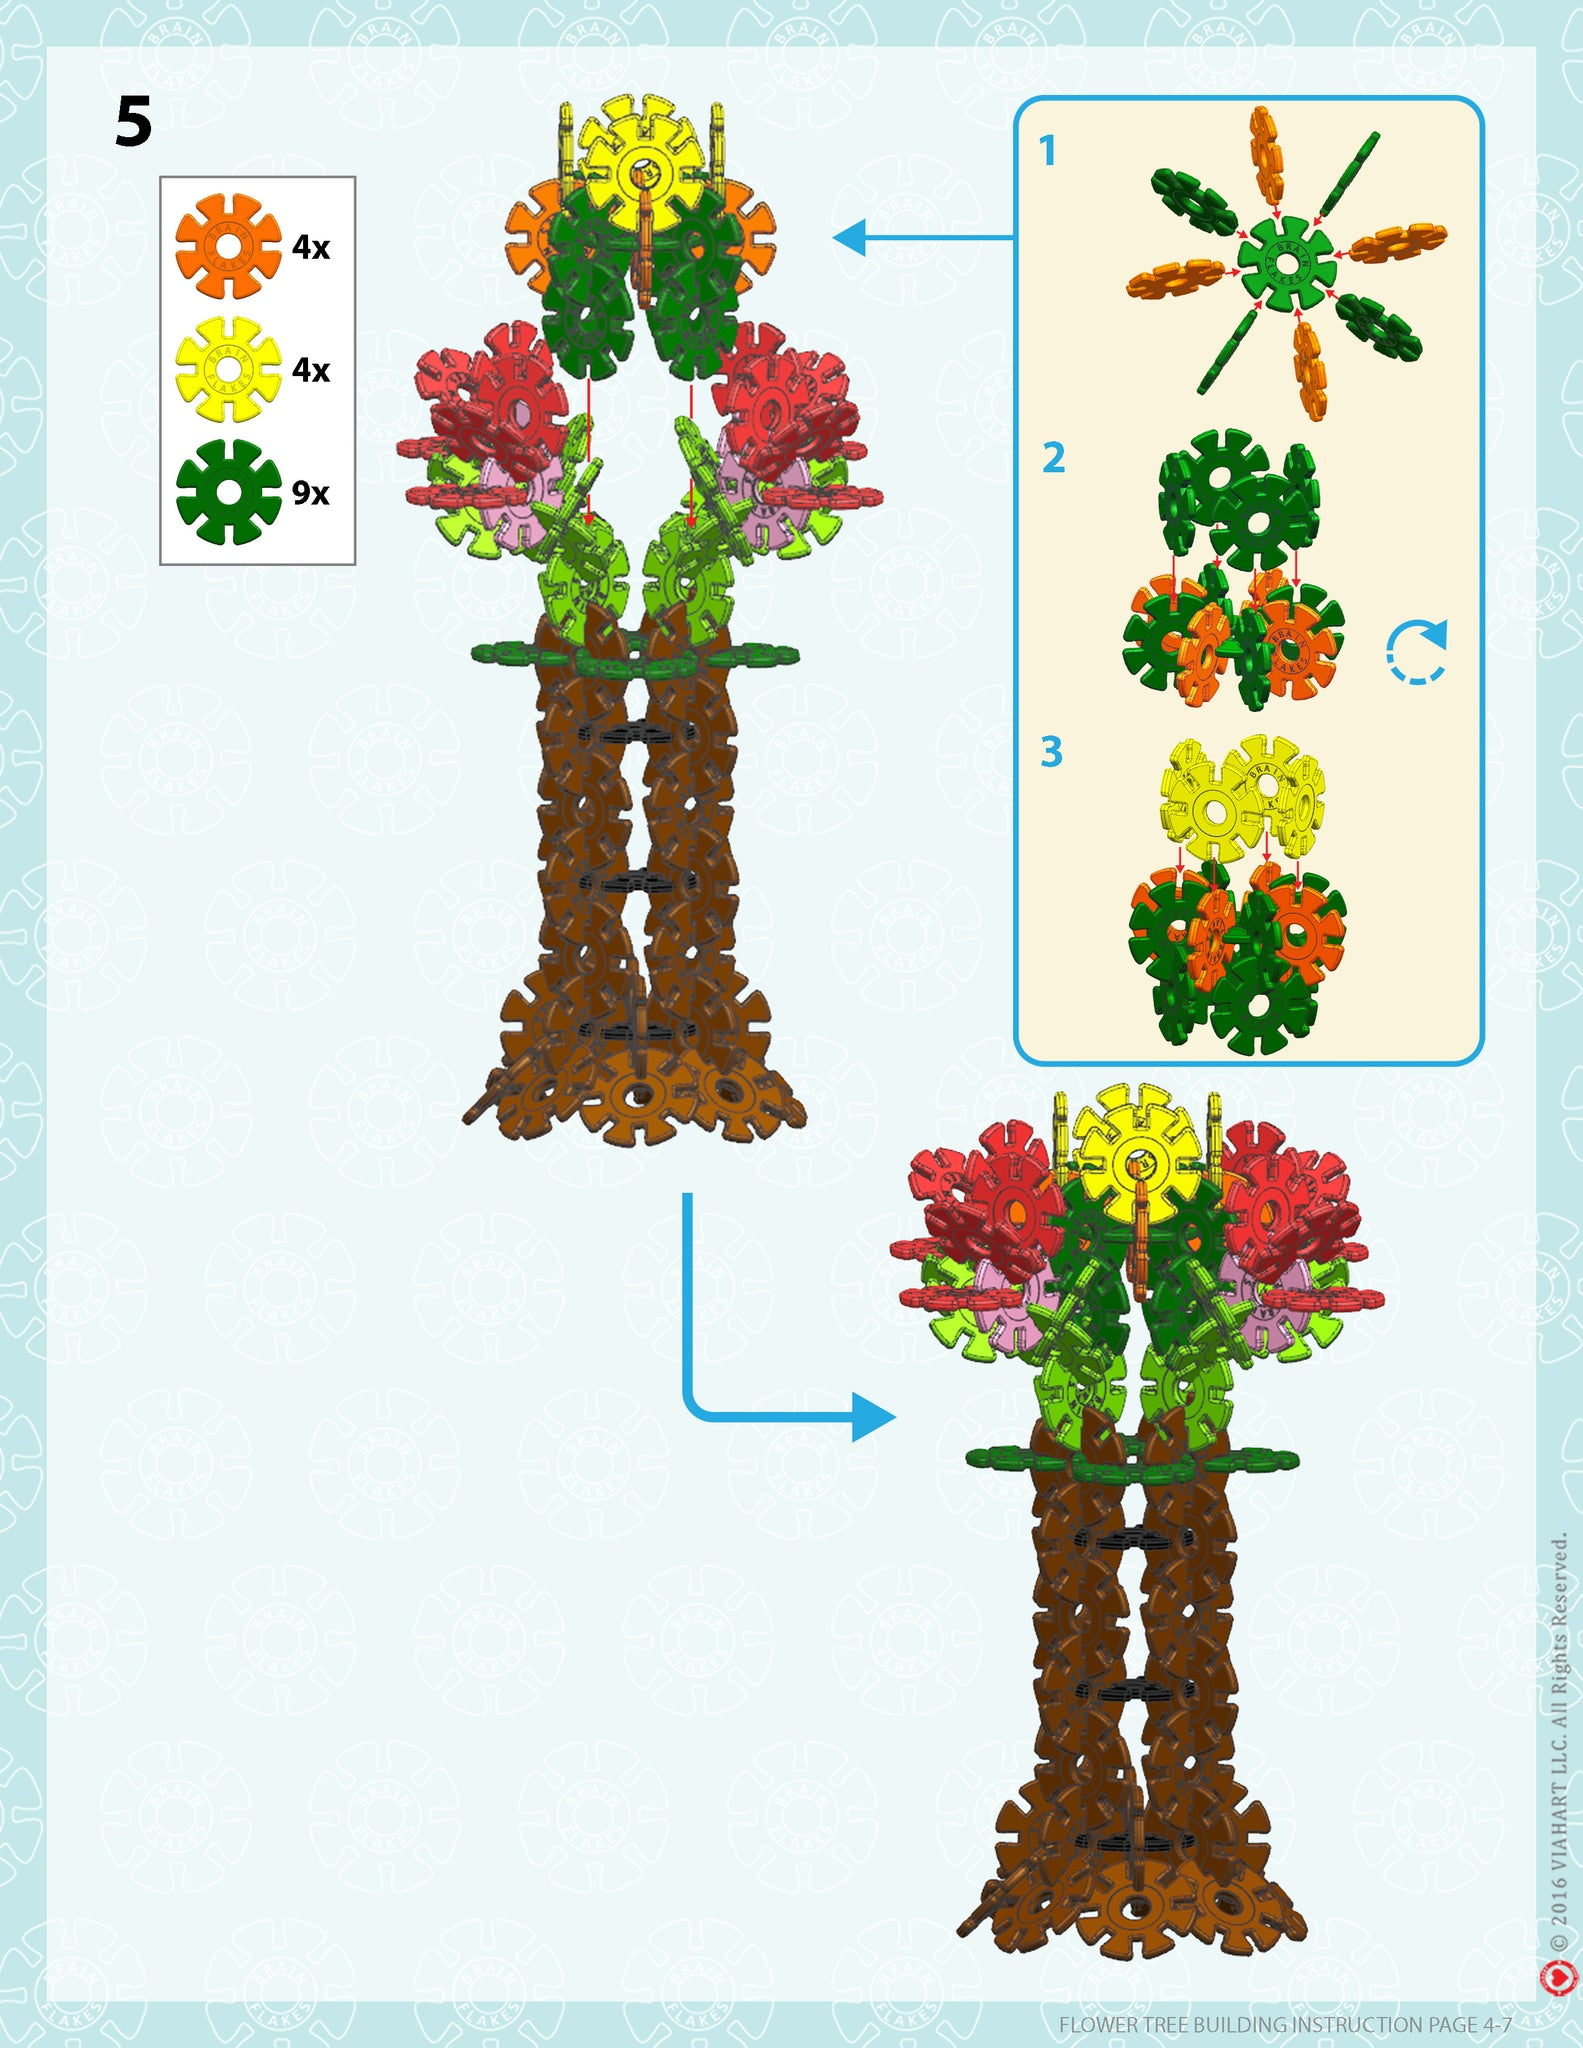 Brain Flakes Tree building instructions 4